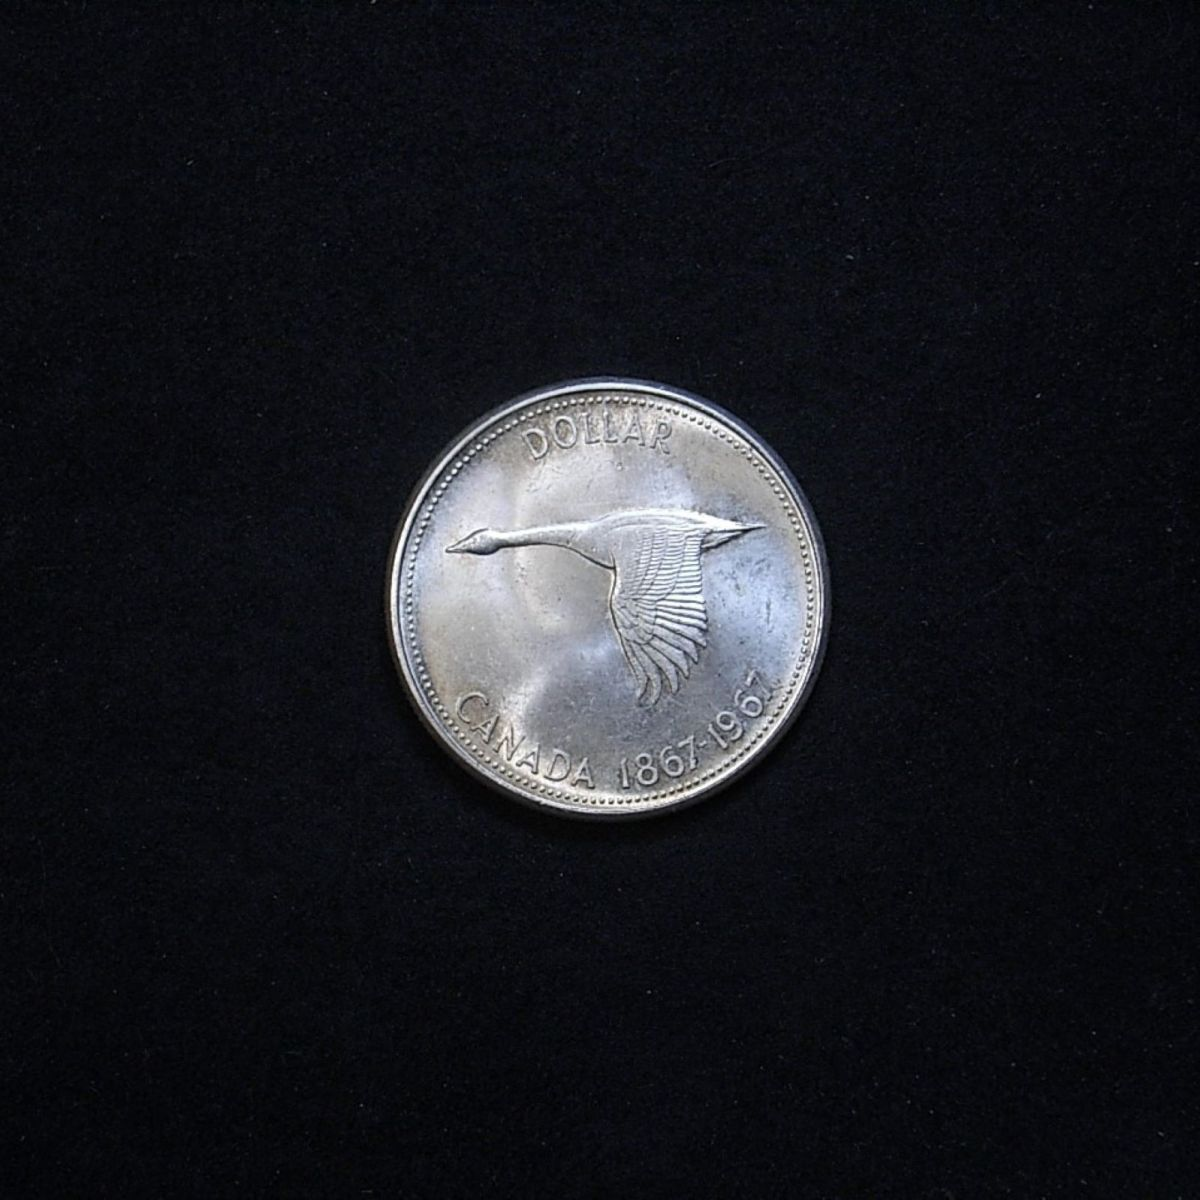 1967 Canadian Goose Dollar reverse highlighting the coin's lustre